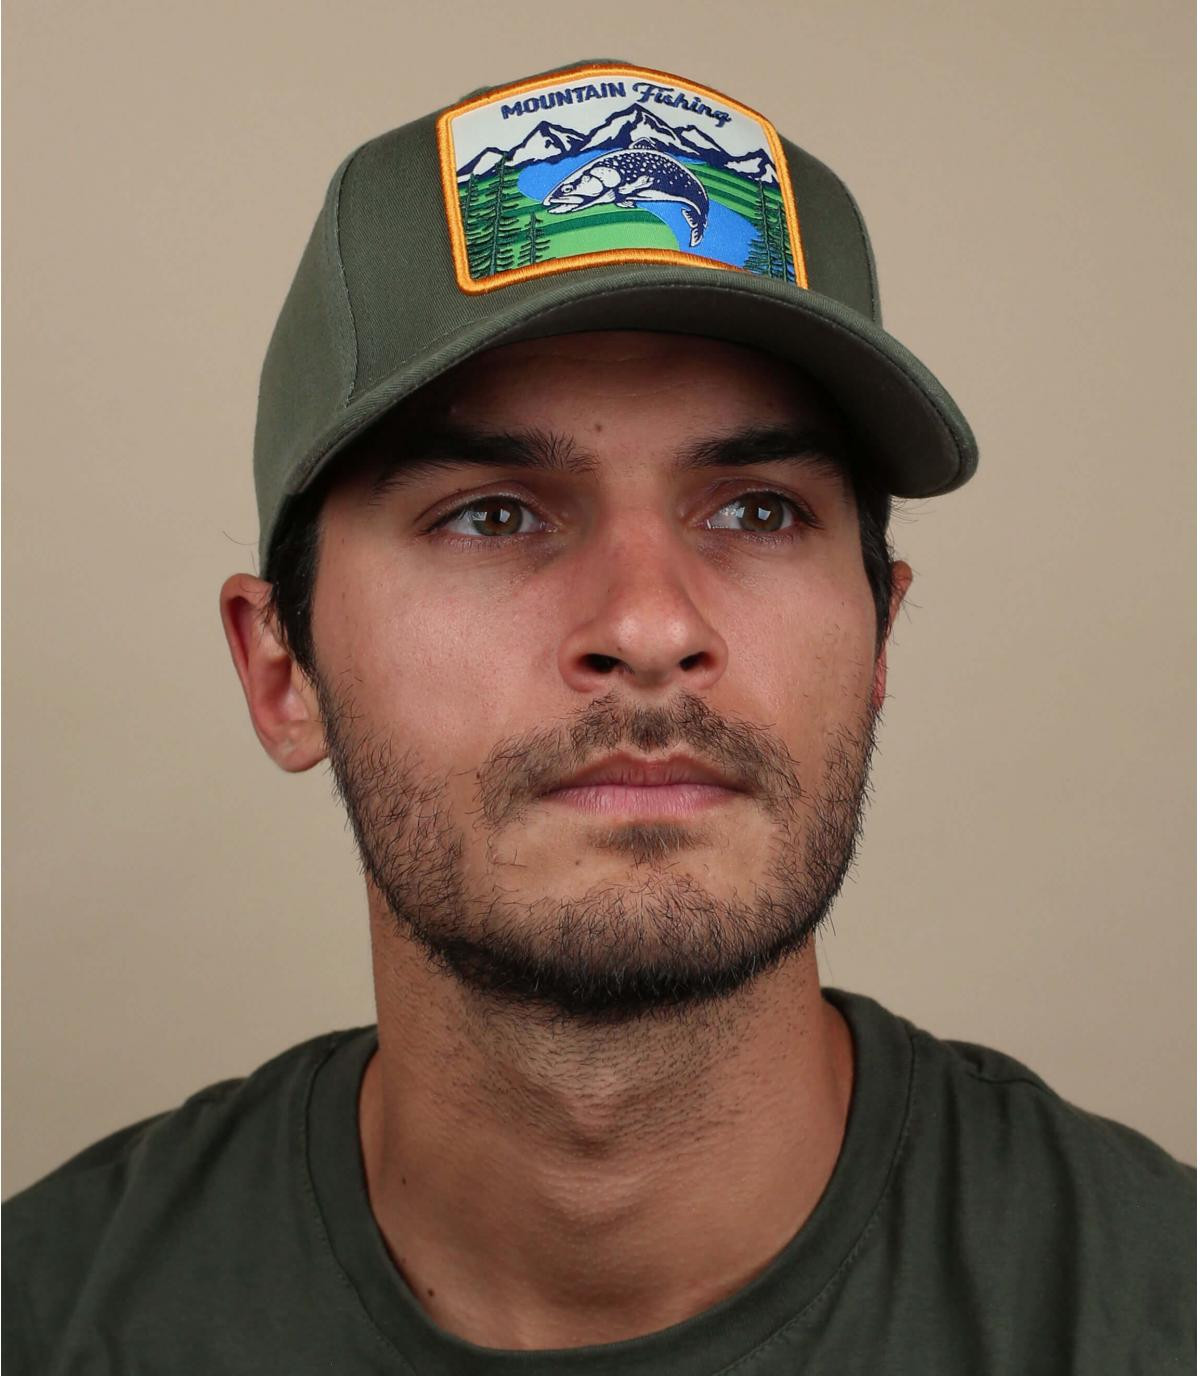 olive-green outdoors cap